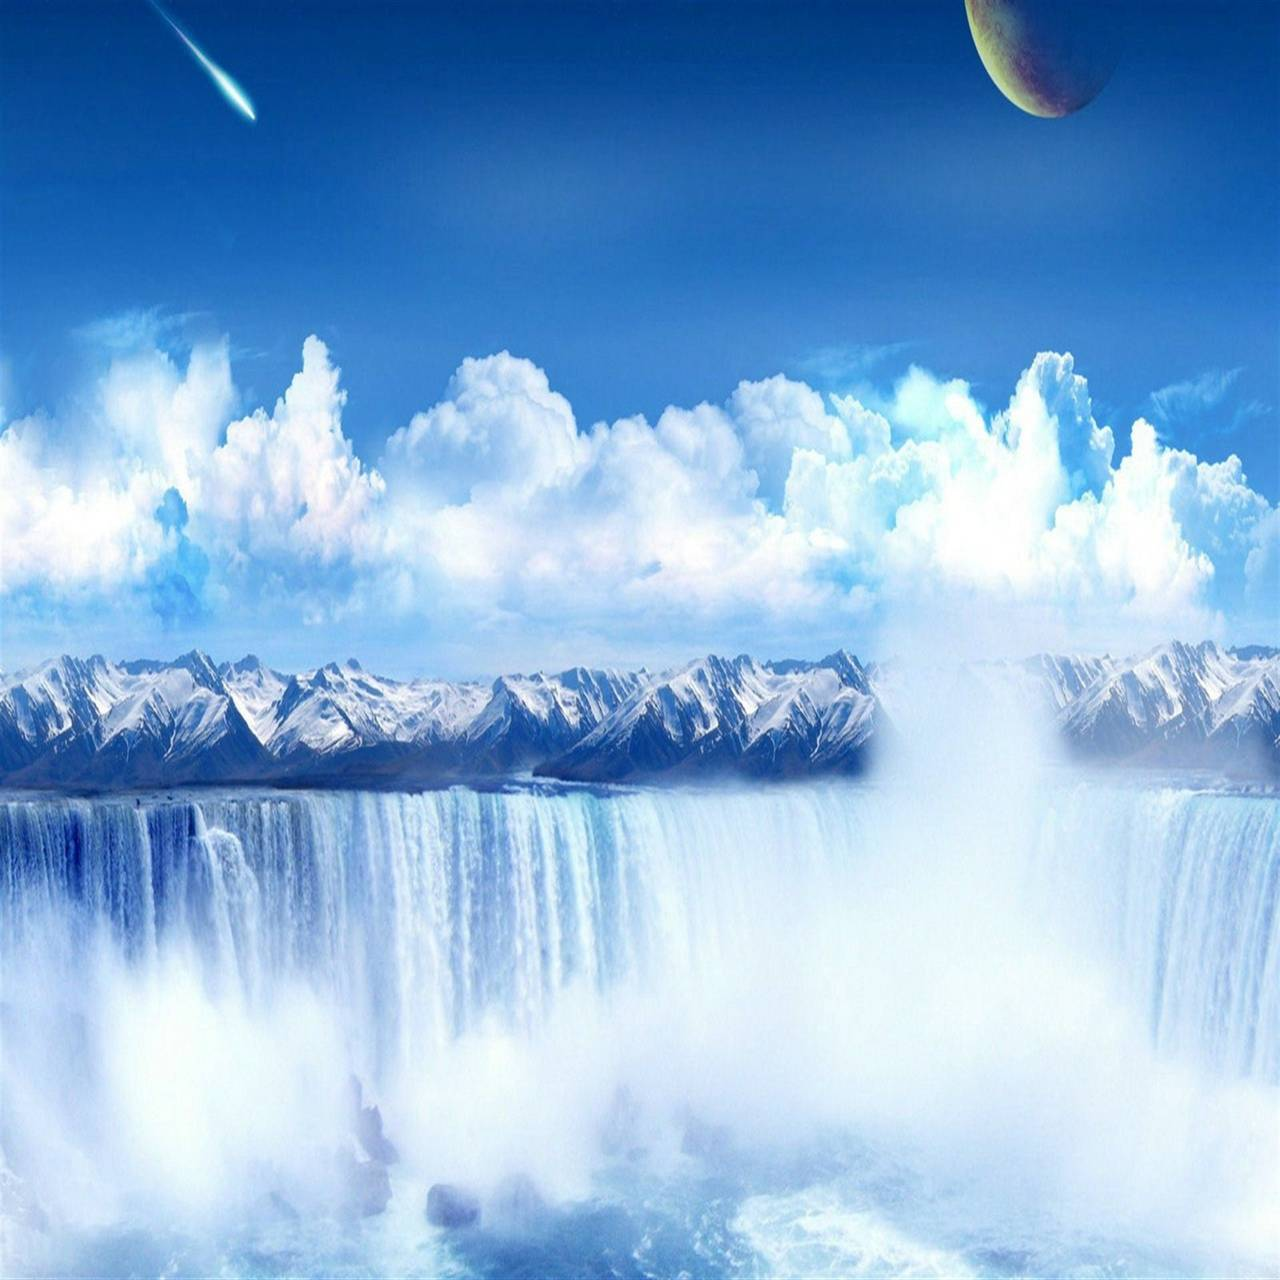 Waterfall And Planet